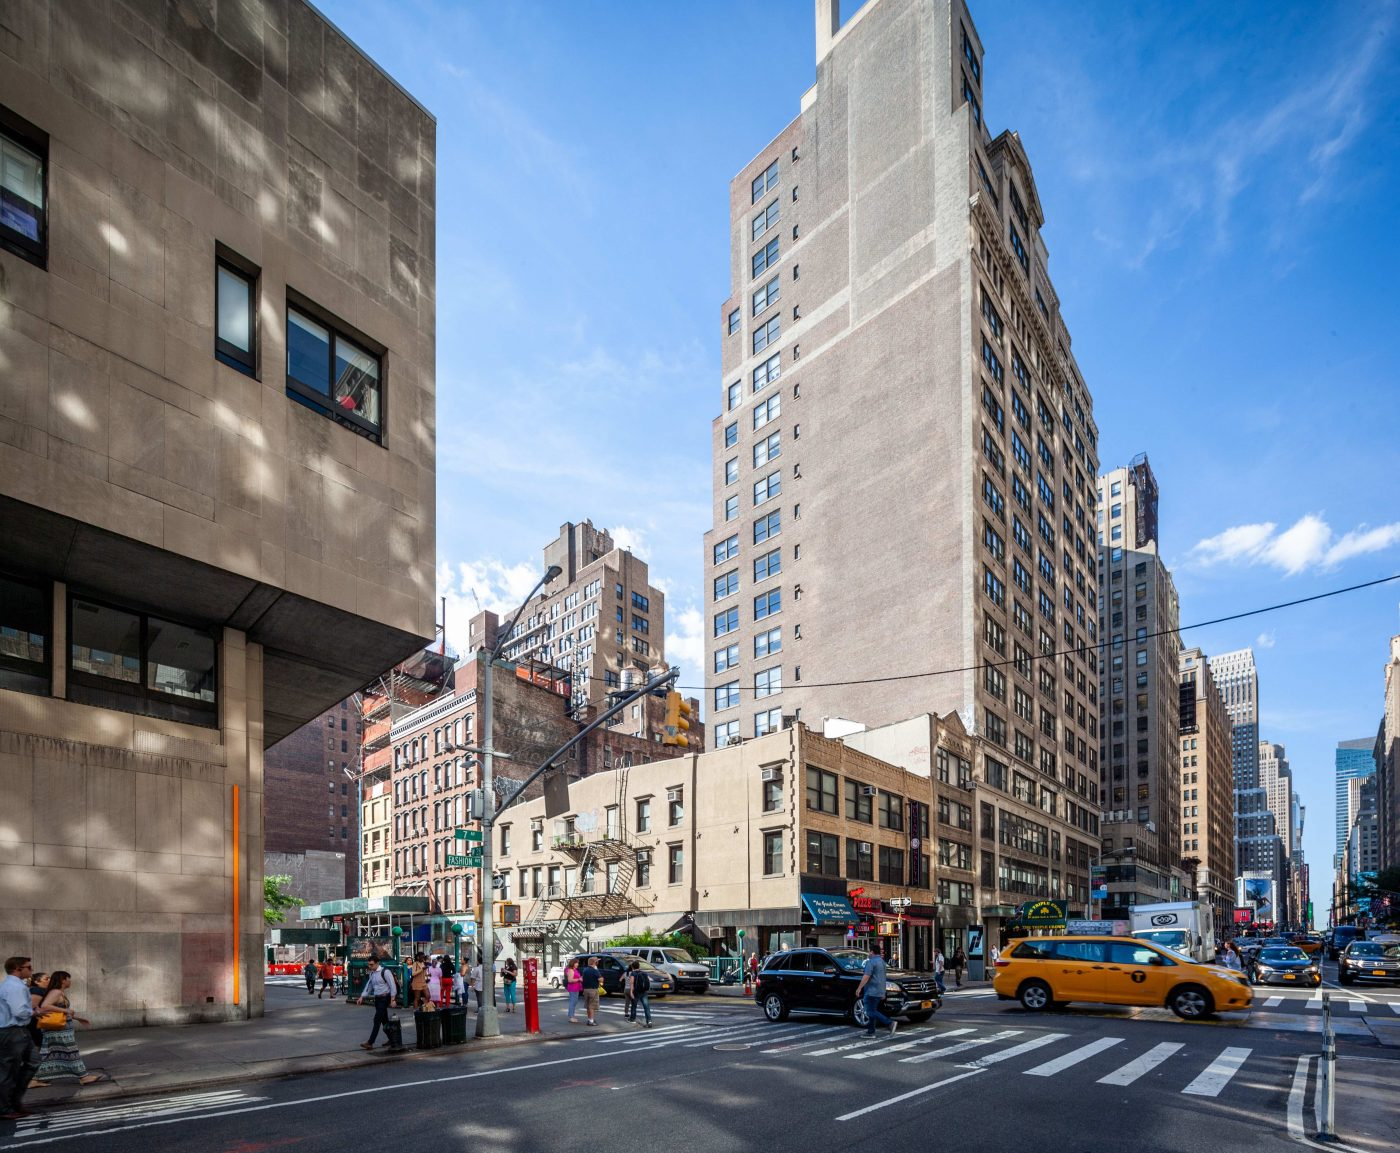 Existing conditions at 322-326 7th Avenue - GDSNY